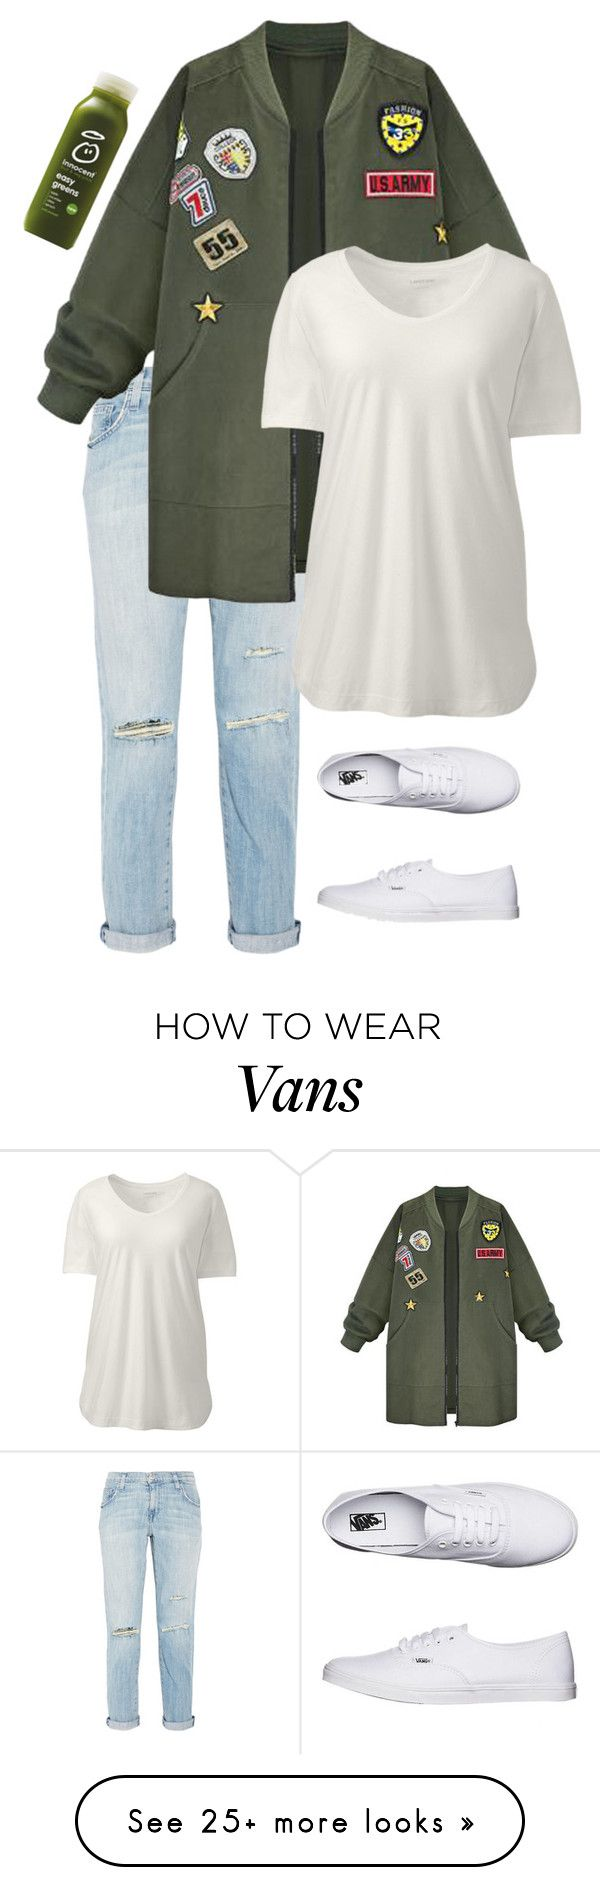 """"""""""" by blah-blah-blah-black on Polyvore featuring Current/Elliott, WithChic, Lands' End, Vans and plus size clothing"""